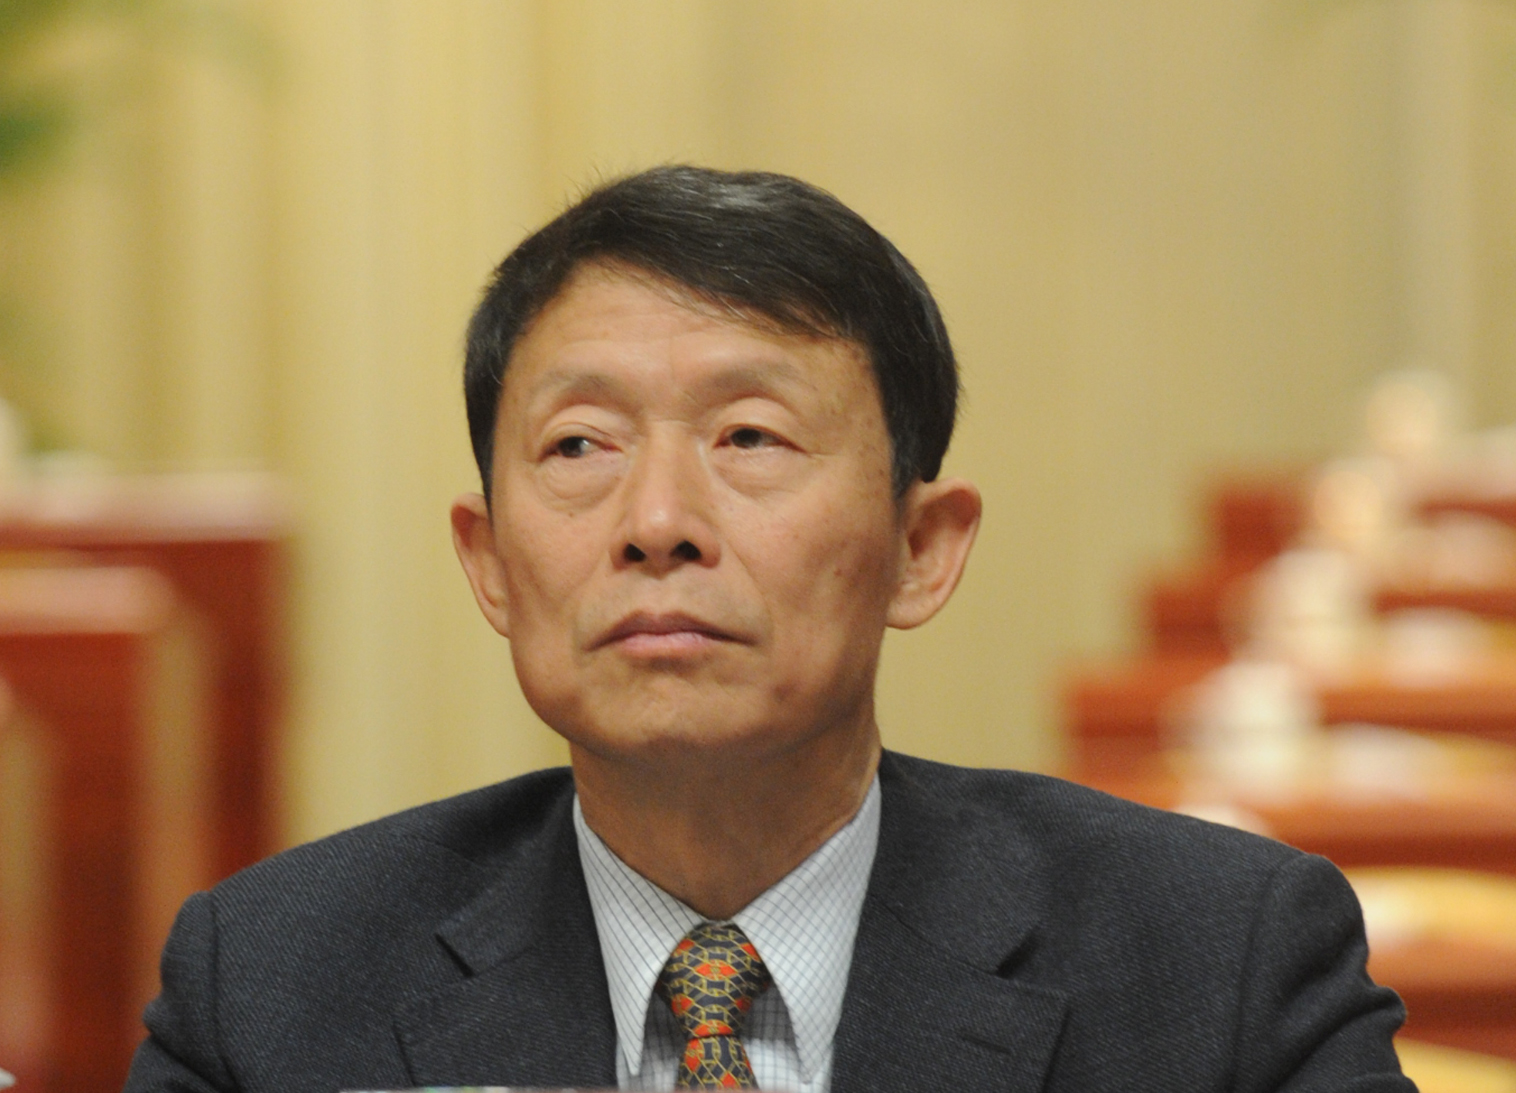 Li Chongxi, then chairman of the Sichuan provincial committee of the Chinese People's Political Consultative Conference, attends a conference in Chengdu, southwest China's Sichuan province, on Jan. 10, 2012